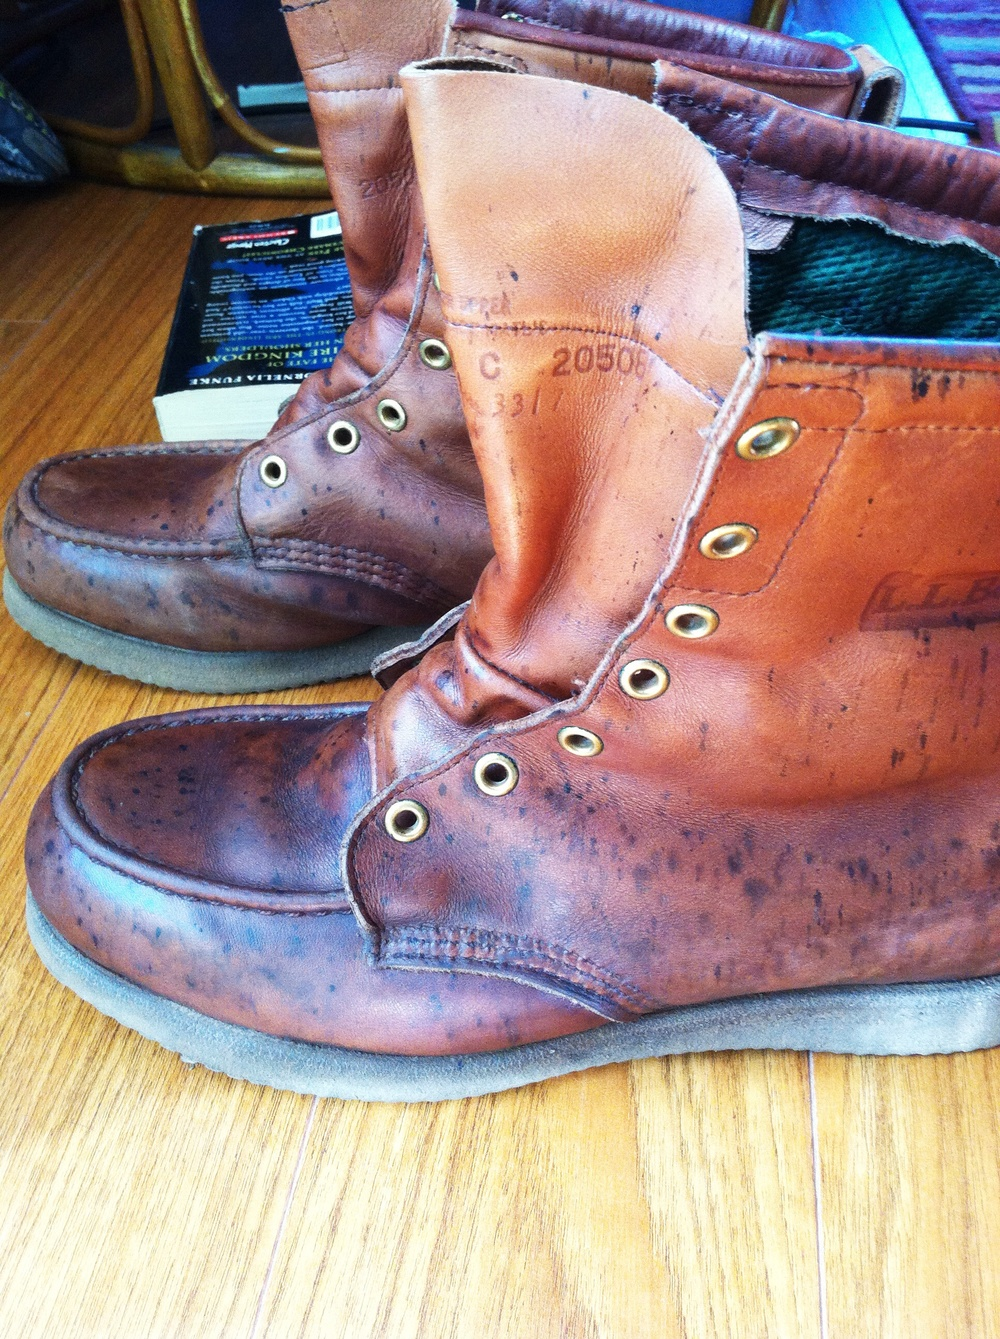 One boot mink oiled, one boot conditioned, The beat-up leather on the toes just sucks in the moisture, and look at that luster now!